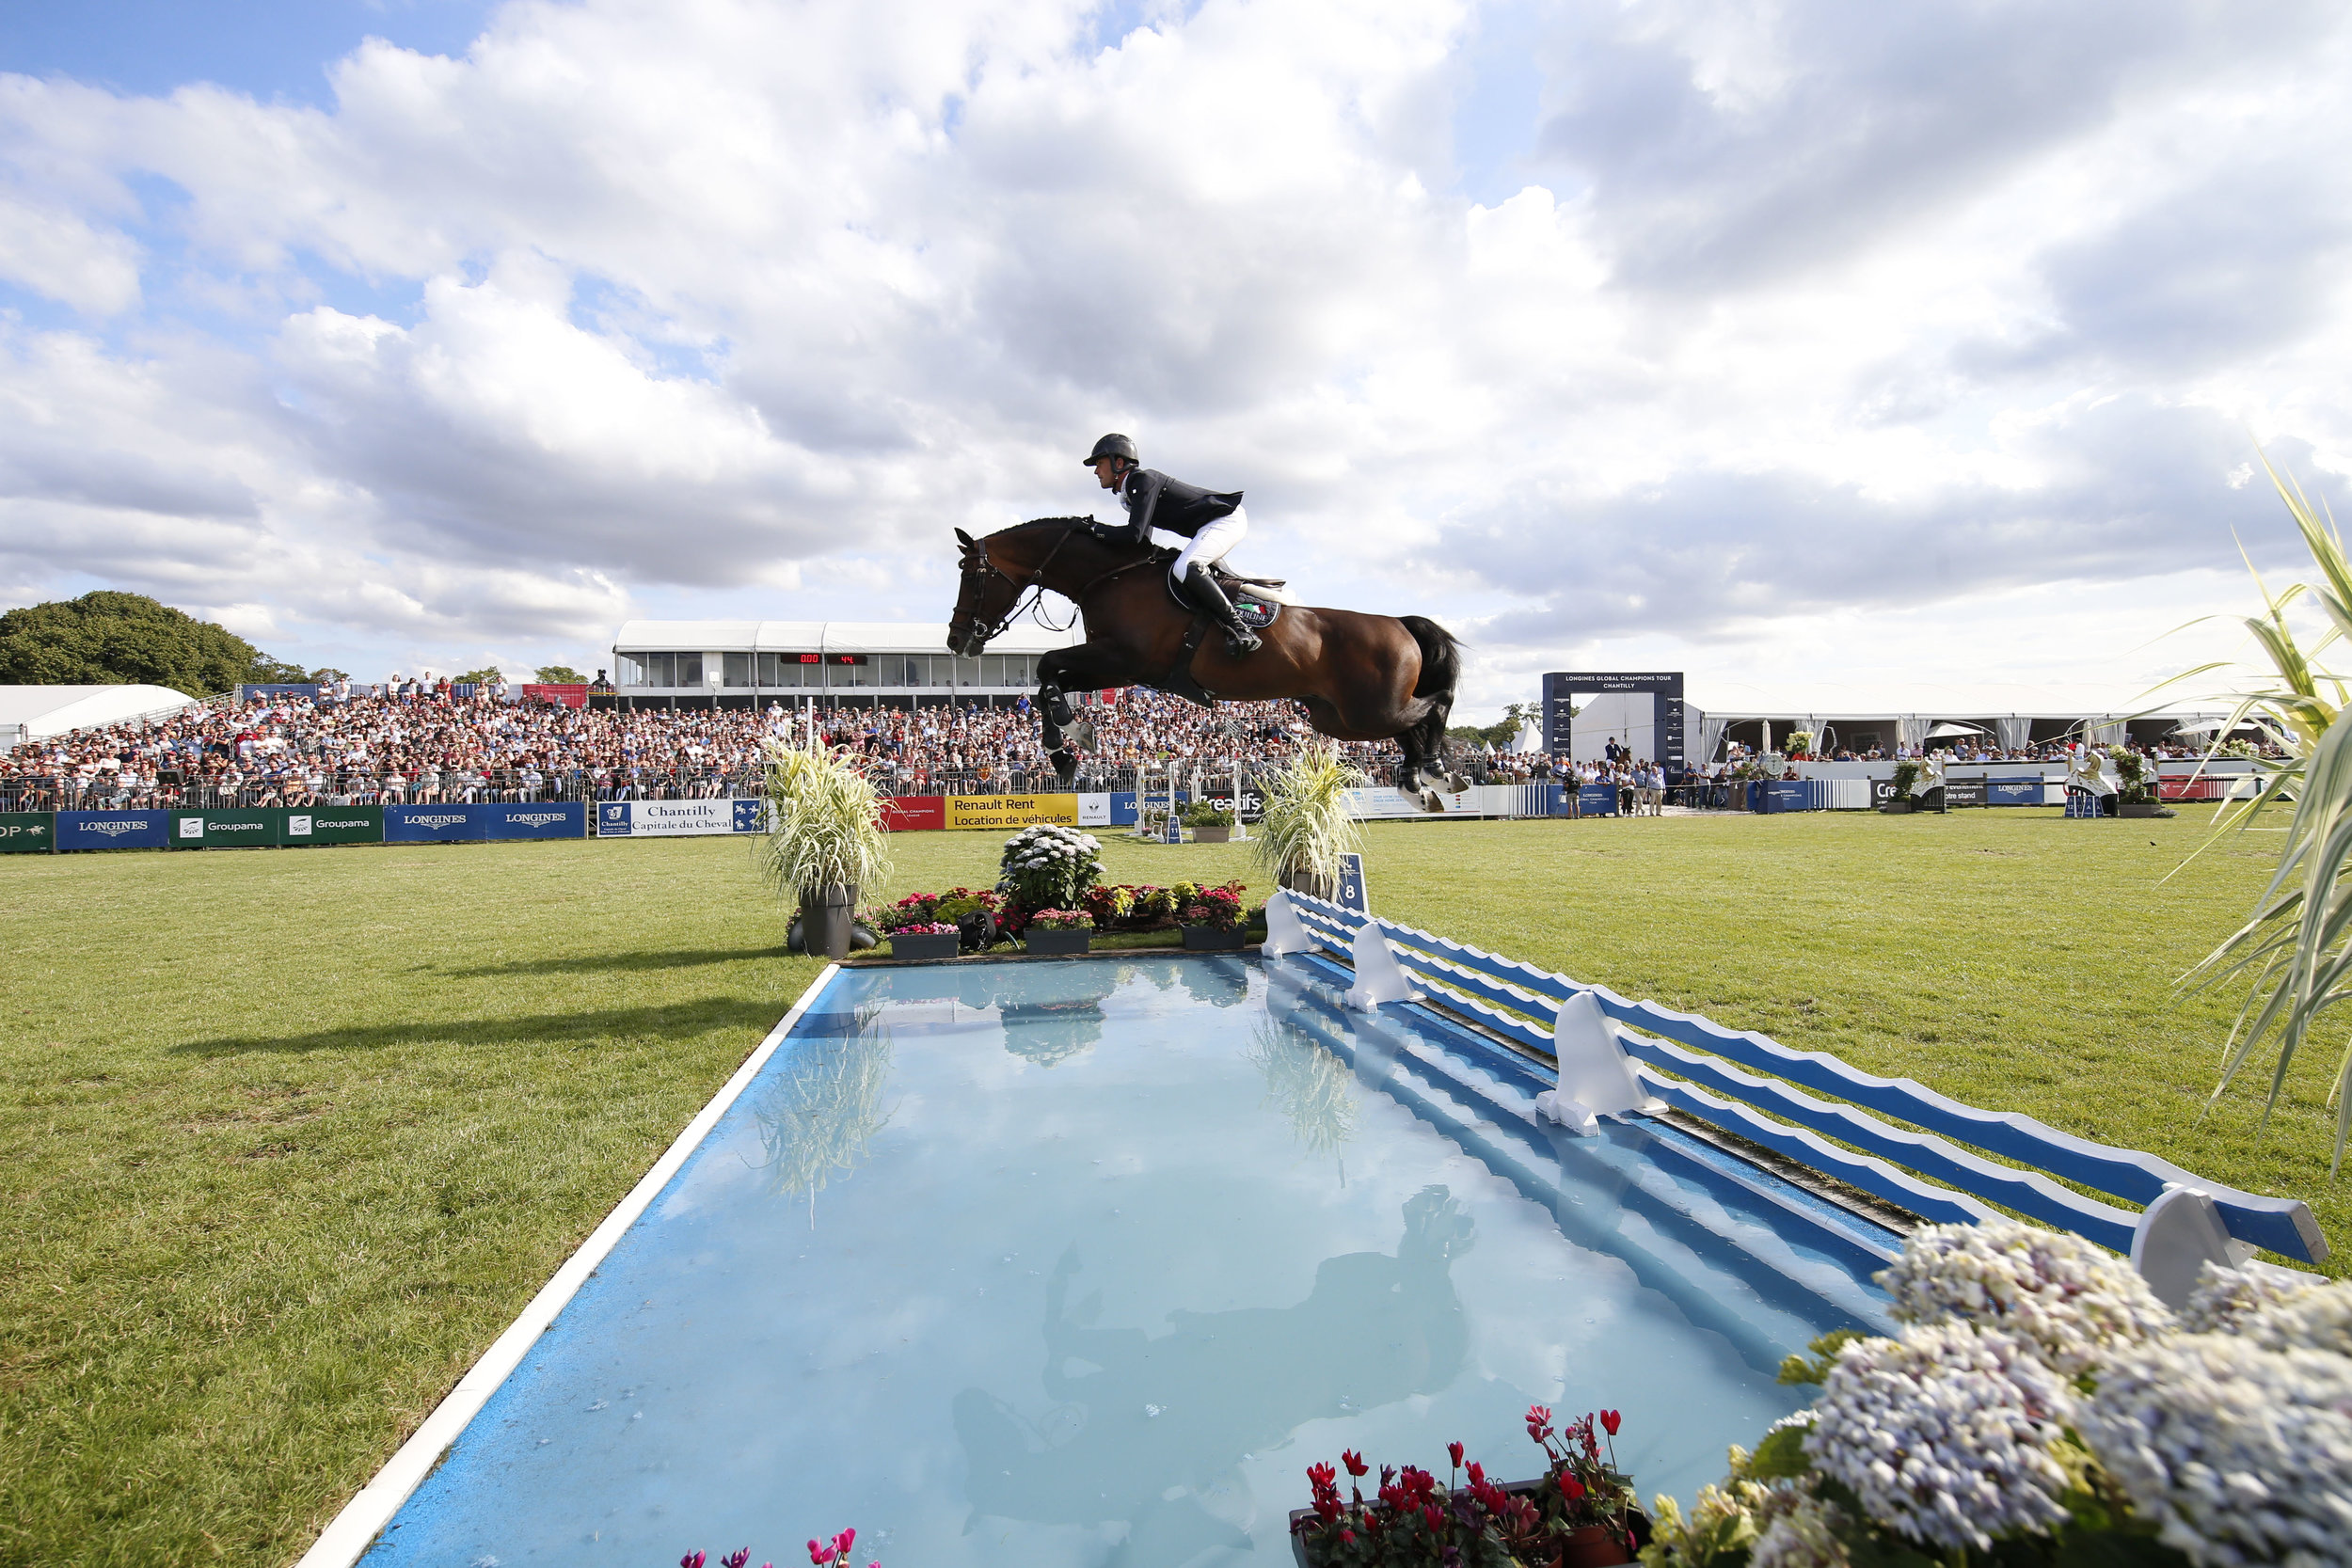 Darragh Kenny and Balou Du Reventon in the Longines Global Champions Tour Grand Prix of Chantilly. Photo by_ LGCT-Stefano Grasso.jpg